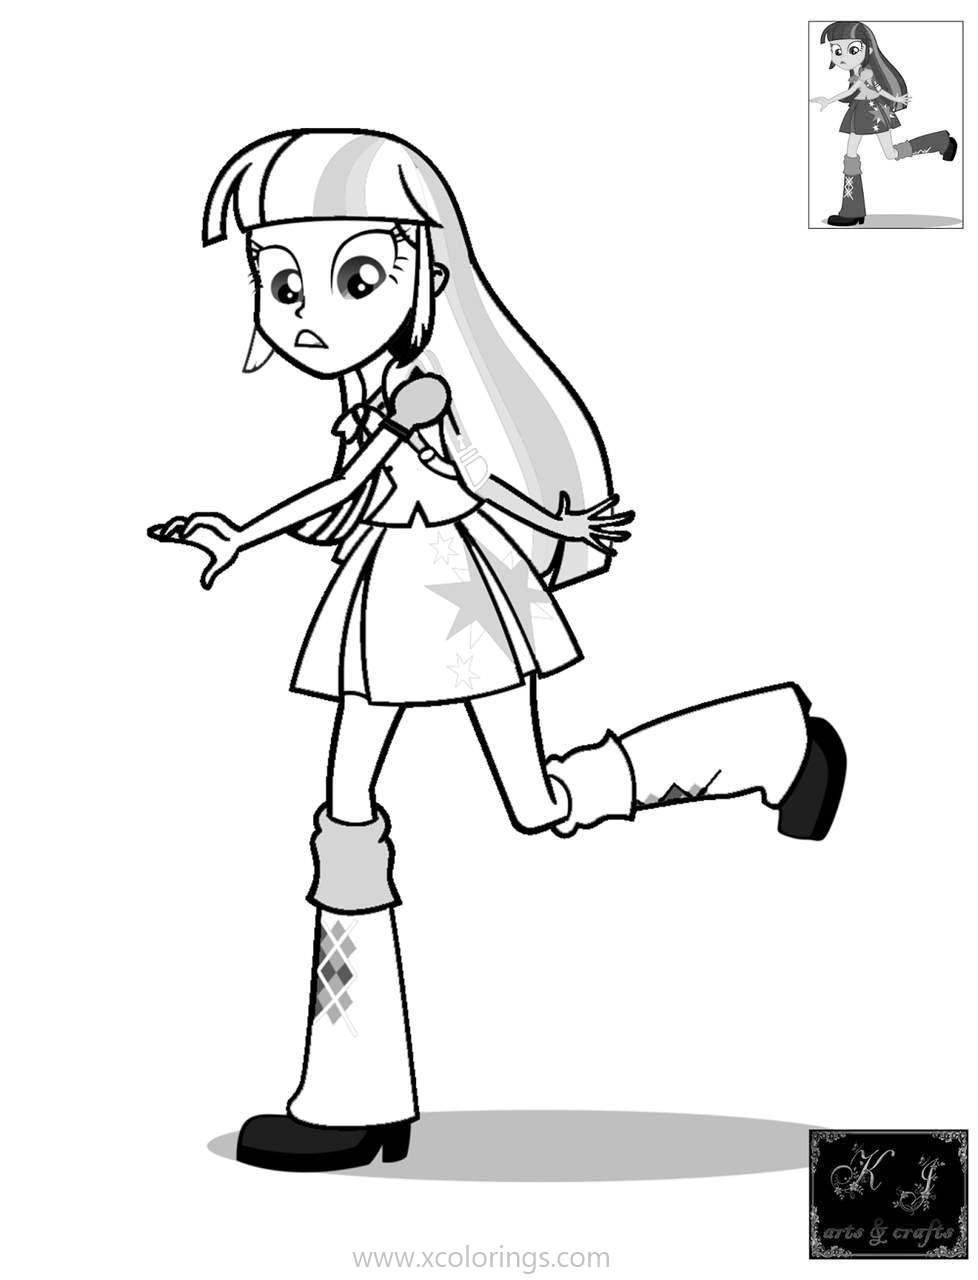 Mlp Equestria Girls Coloring Pages Twilight Sparkle Xcolorings Com